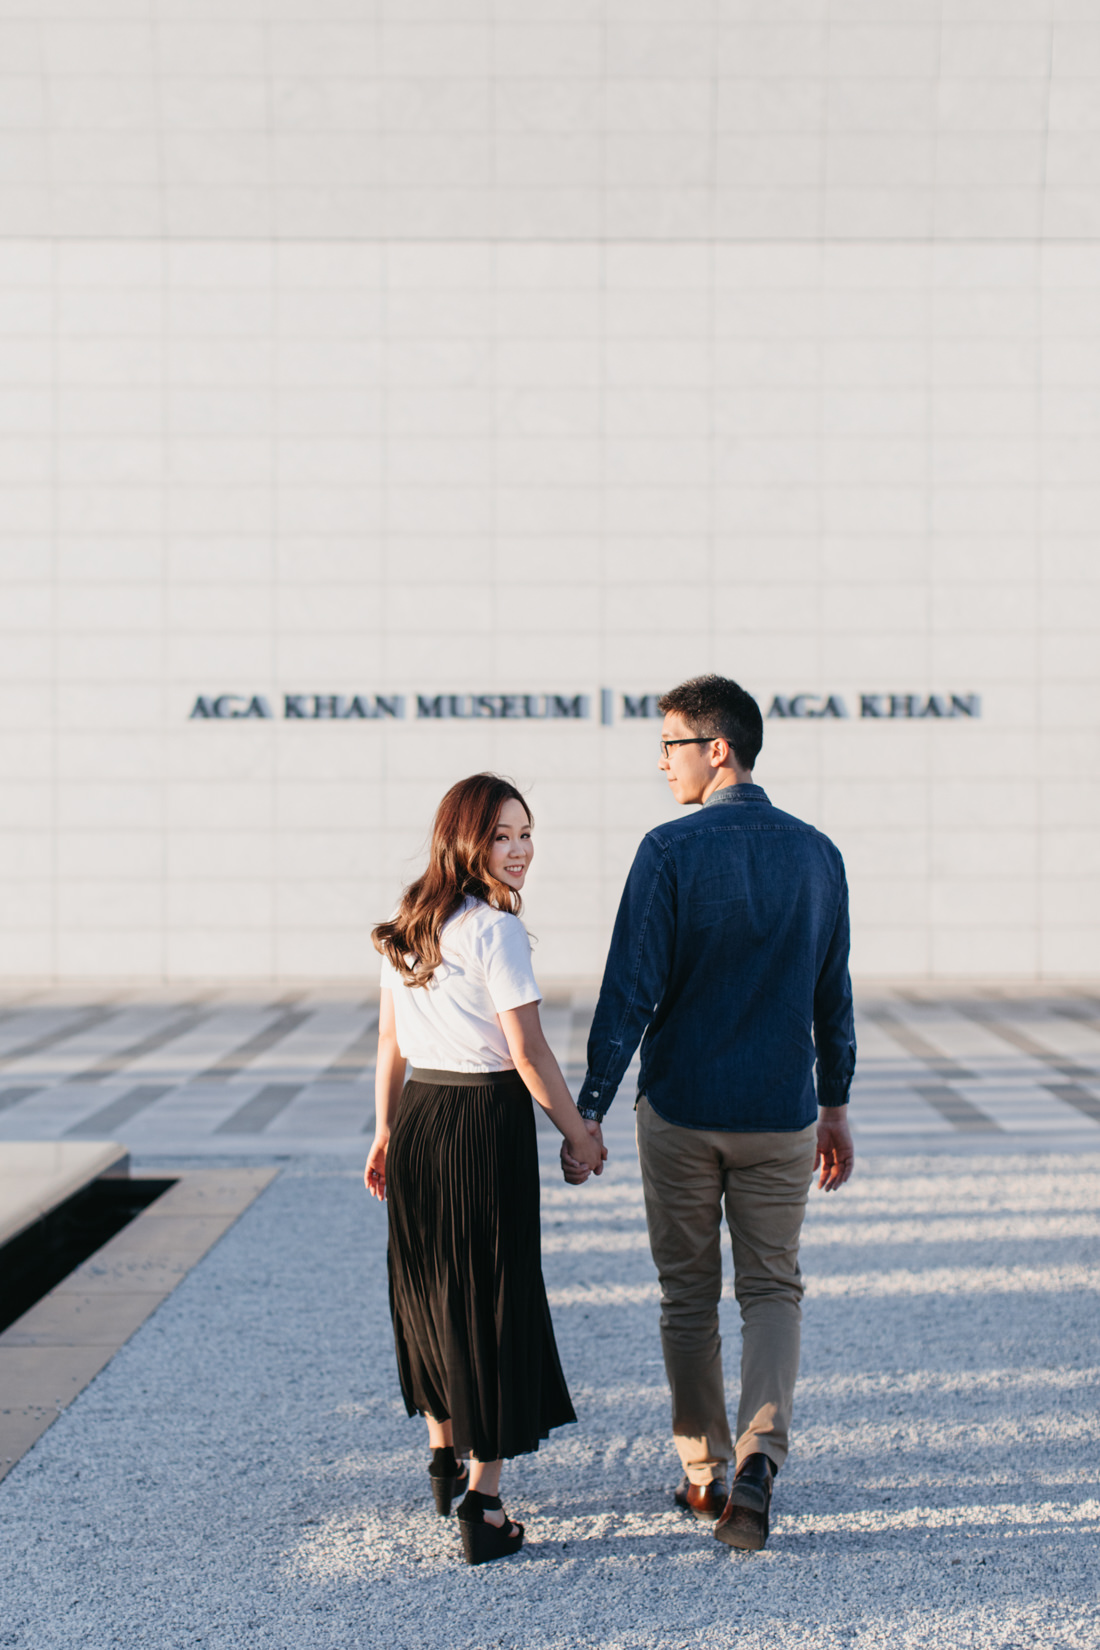 Aga Khan Museum engagement | Minimalist portrait location | Toronto Wedding Photographer | EightyFifth Street Photography